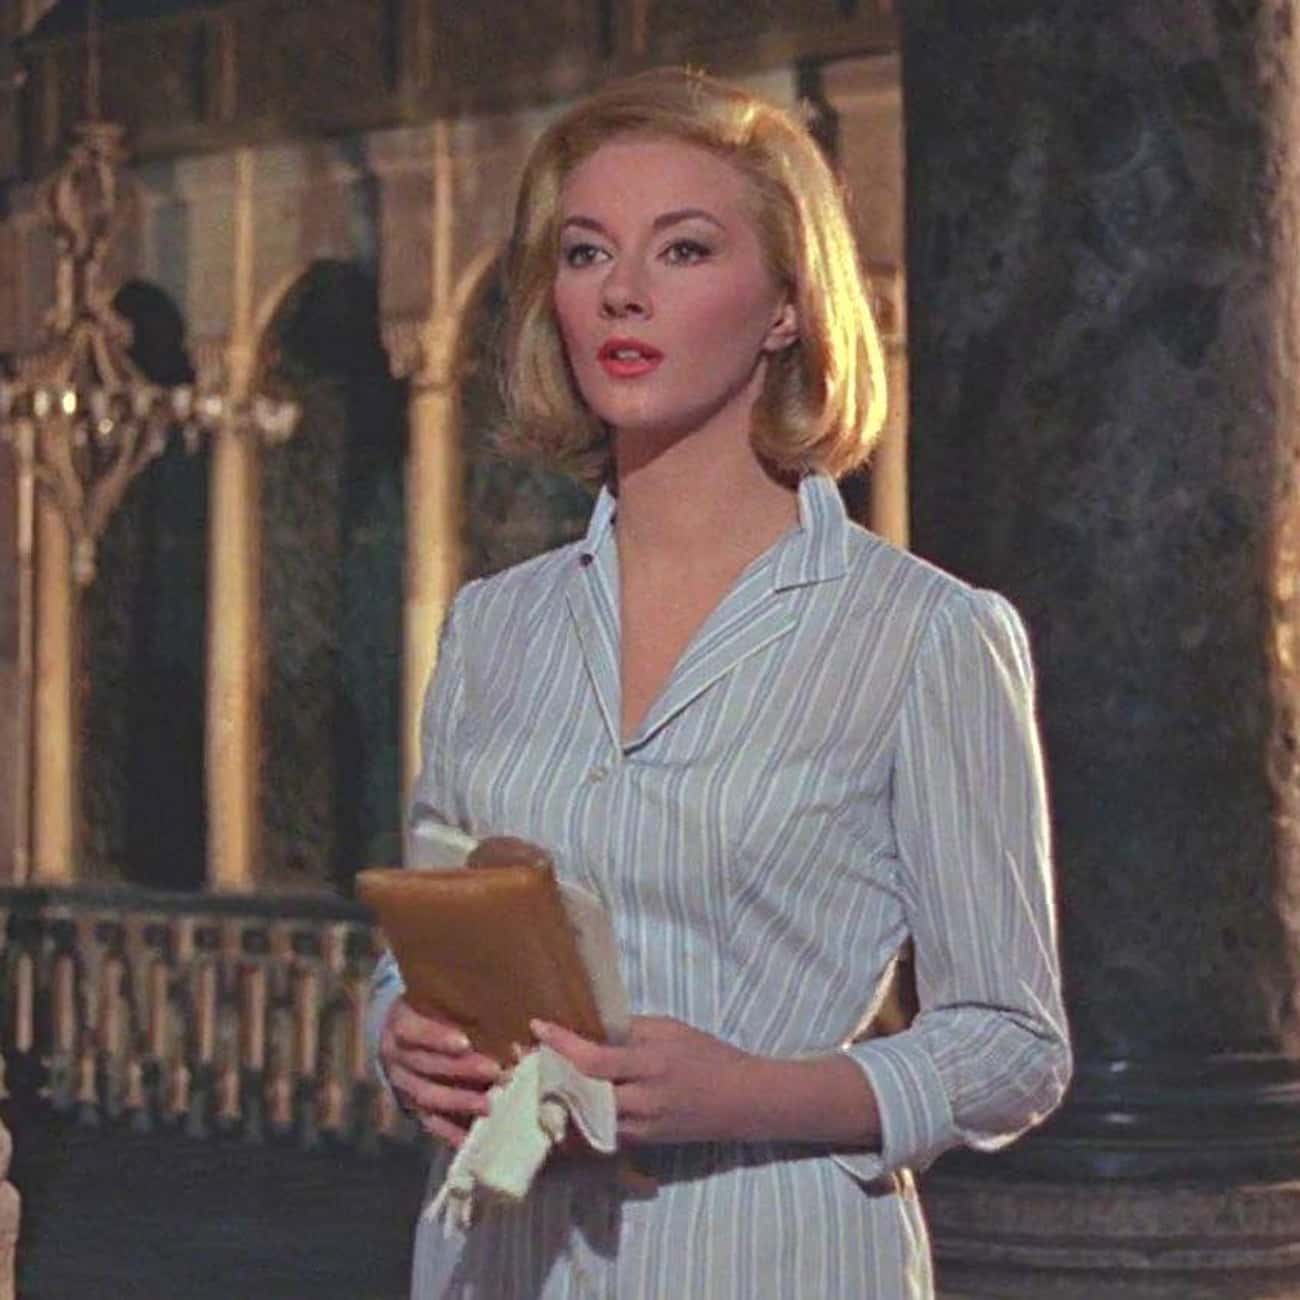 Tatiana Romanova is listed (or ranked) 3 on the list The Most Attractive Bond Girls, Ranked